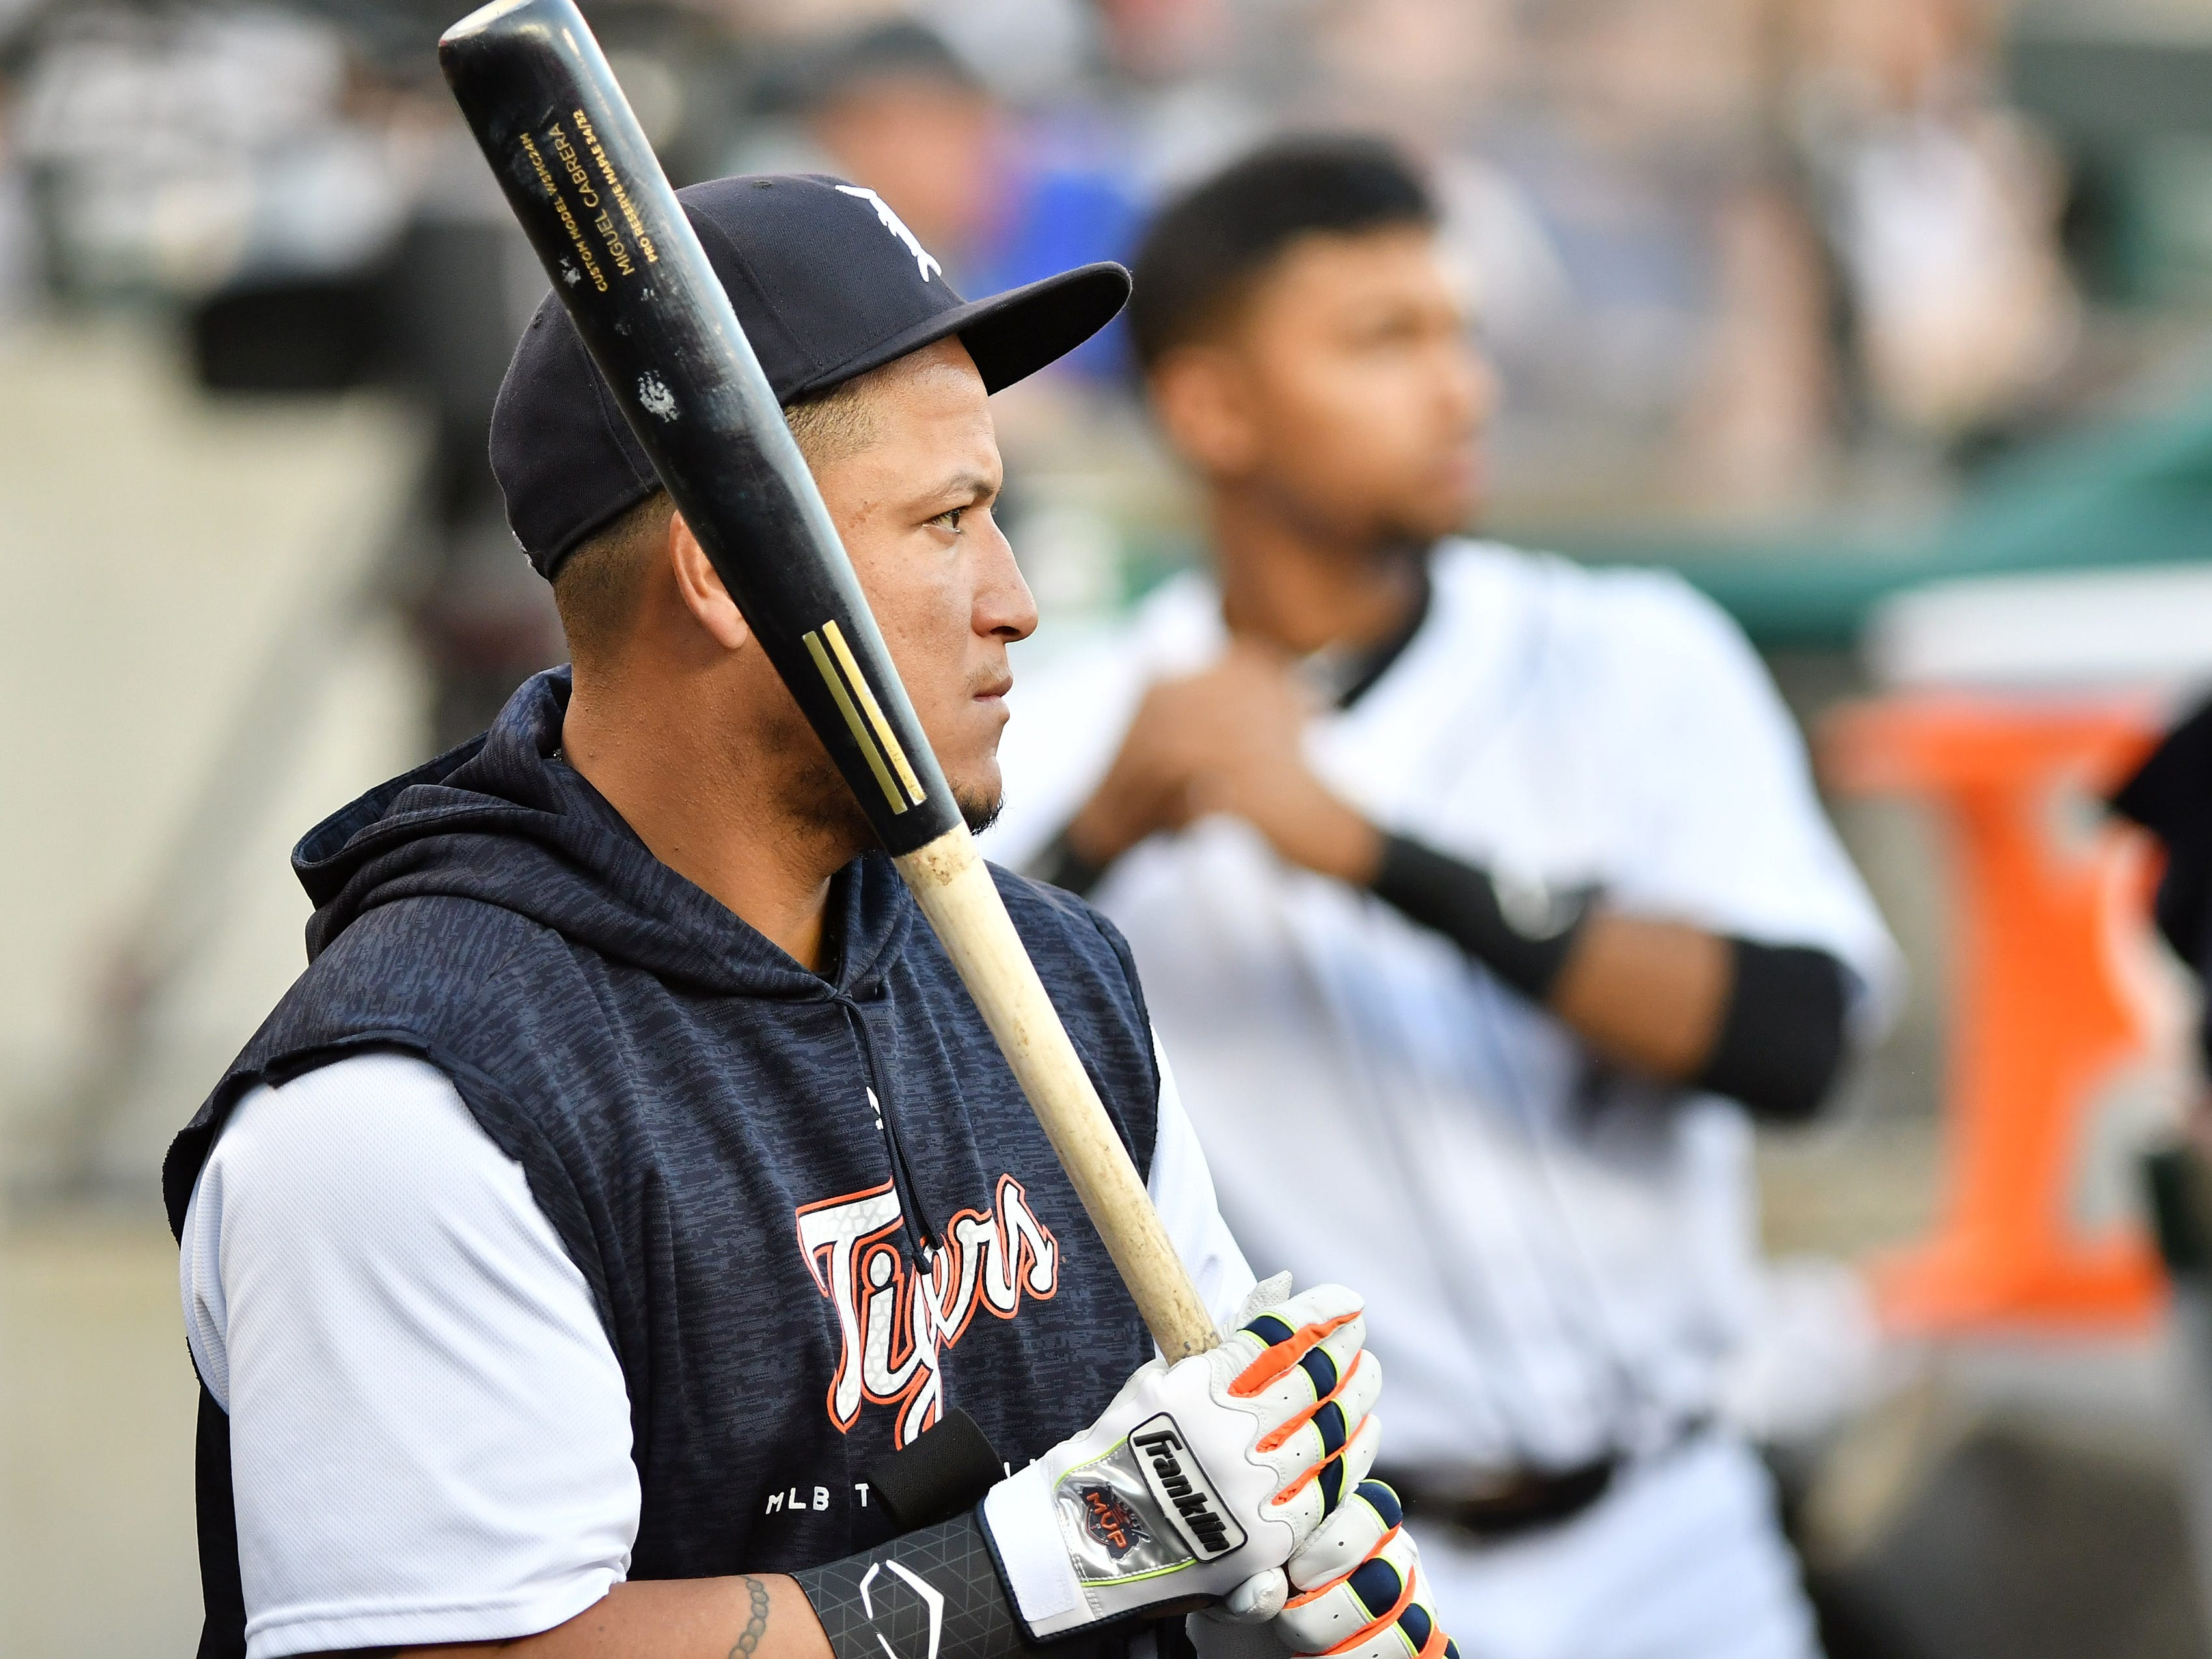 Miguel Cabrera among players attending TigerFest